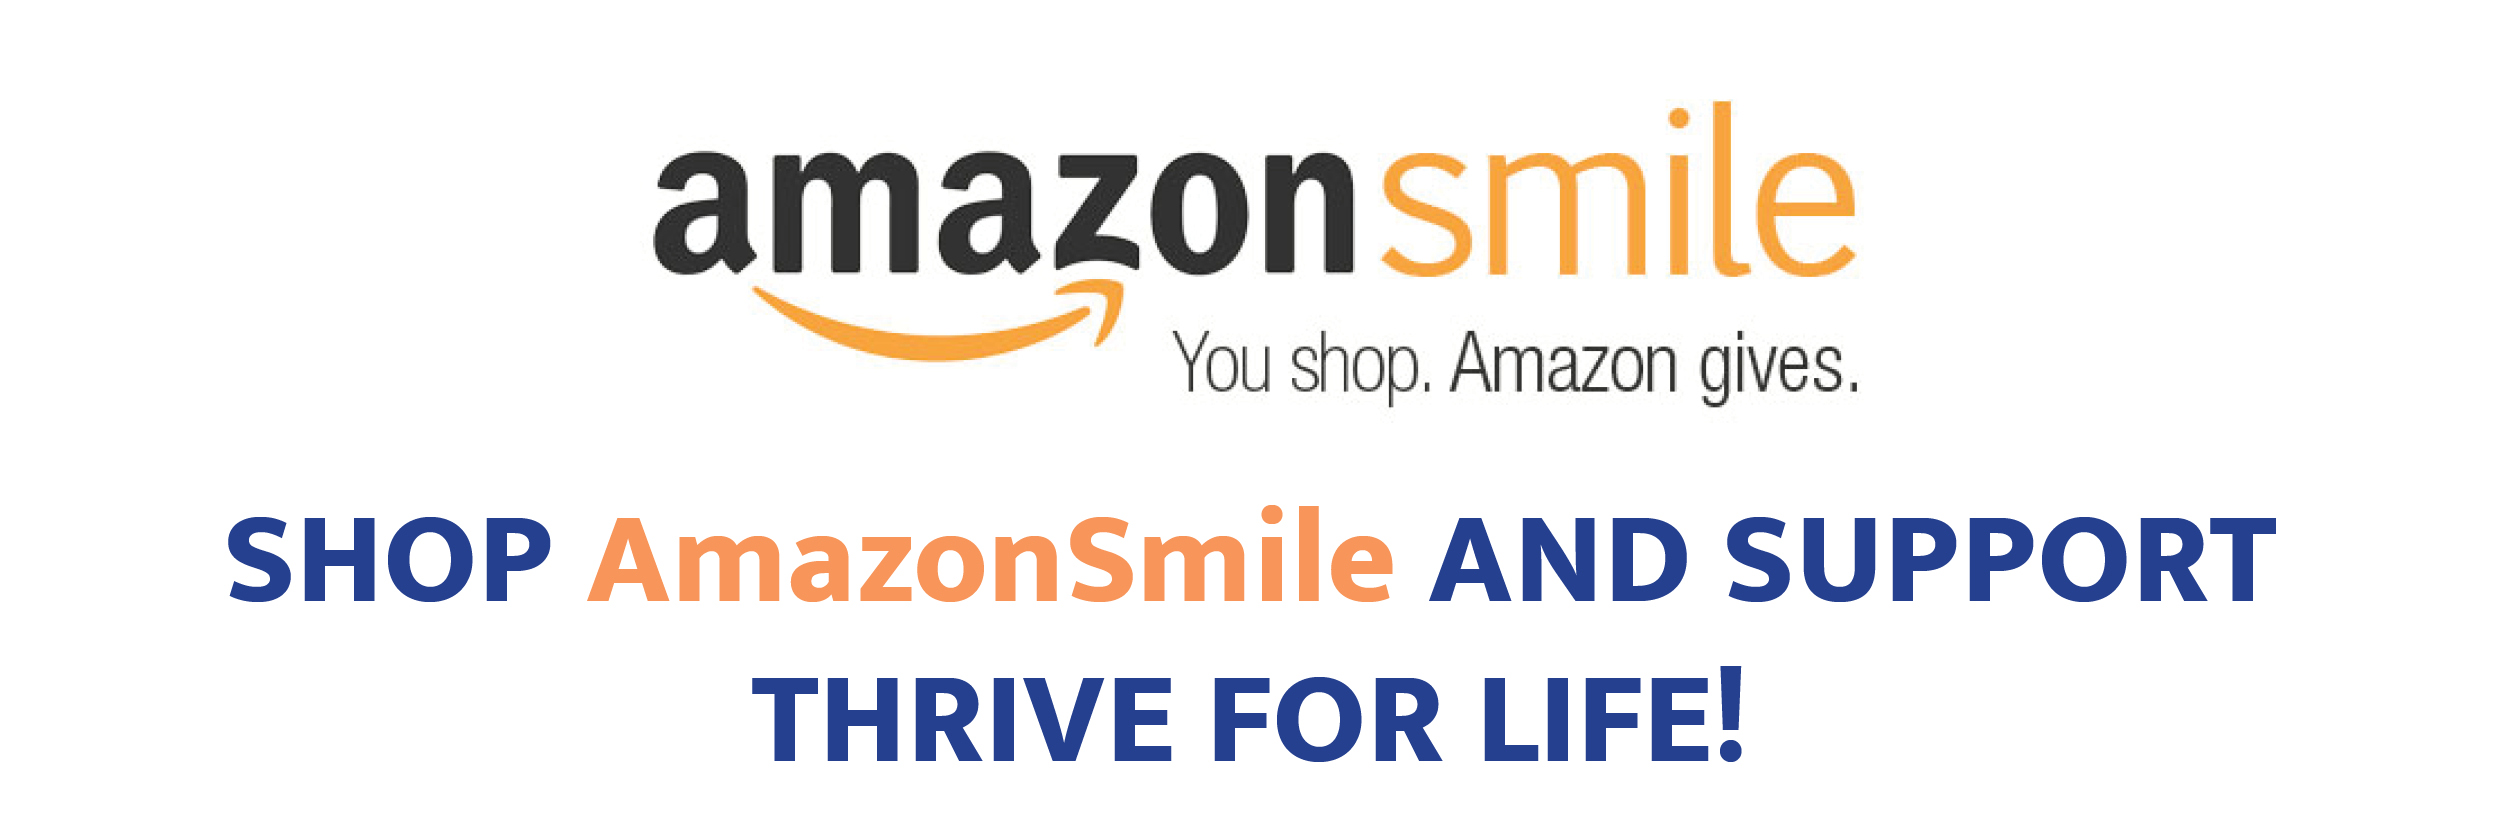 Image for Support our Amazon Smile page_2.jpg